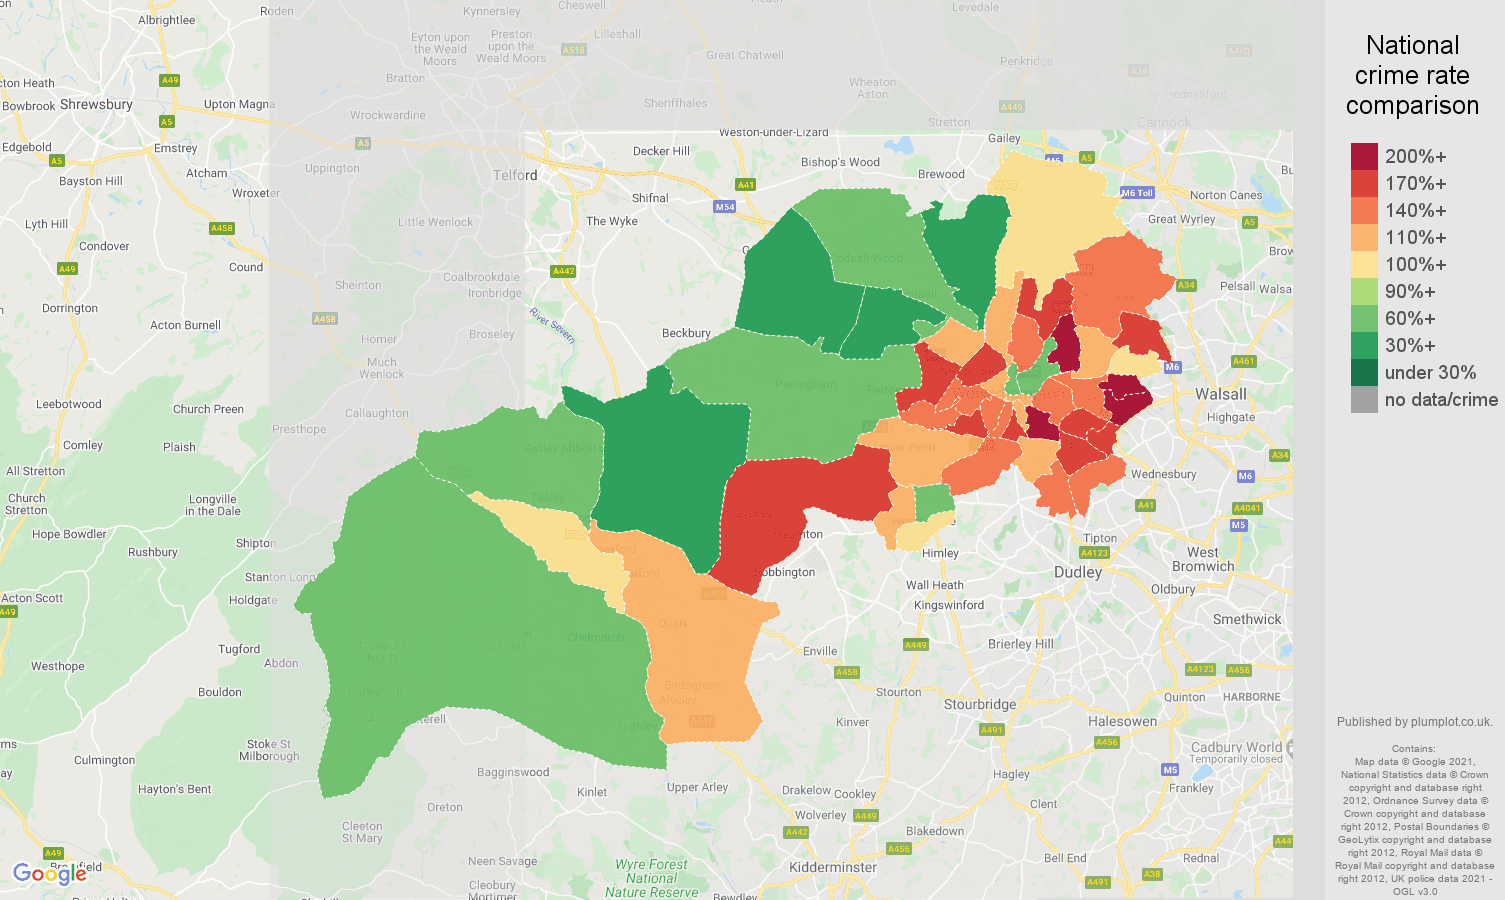 Wolverhampton burglary crime rate comparison map